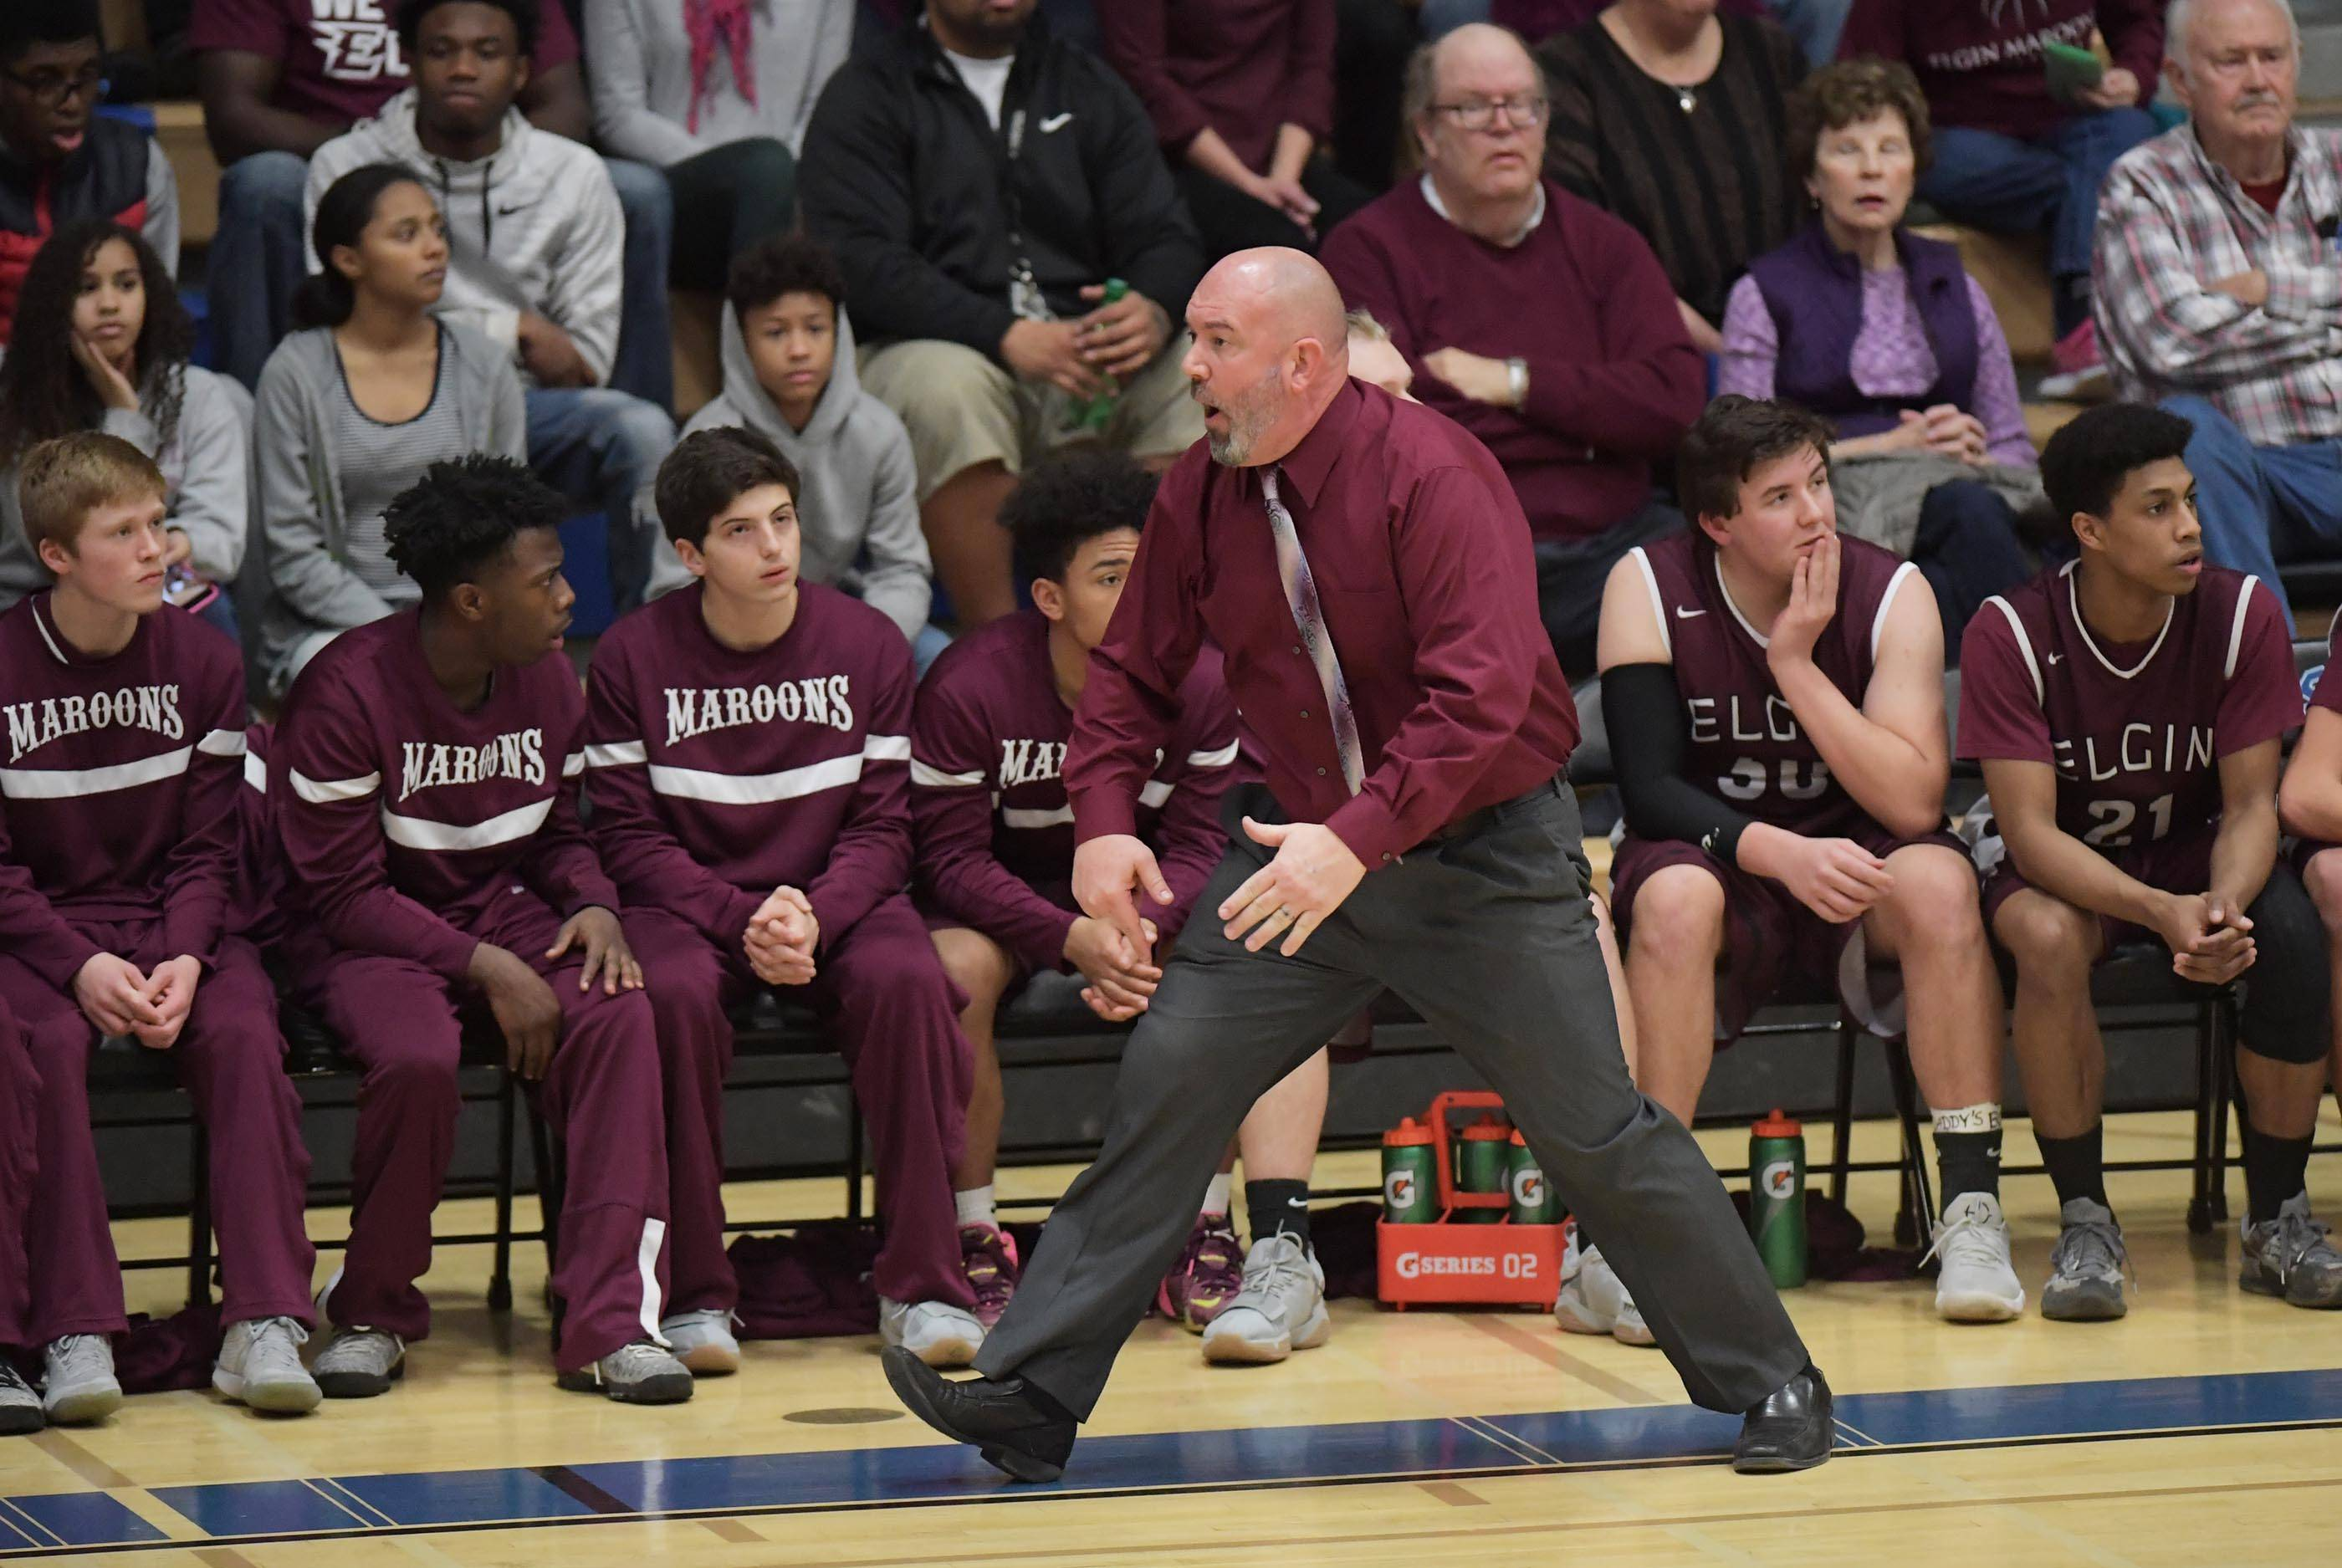 Elgin head coach Mike Sitter reacts to a call Tuesday in the St. Charles North boys basketball regional game against Larkin. It was his final basketball game as he will be the new athletic director at Hampshire High School next school year.